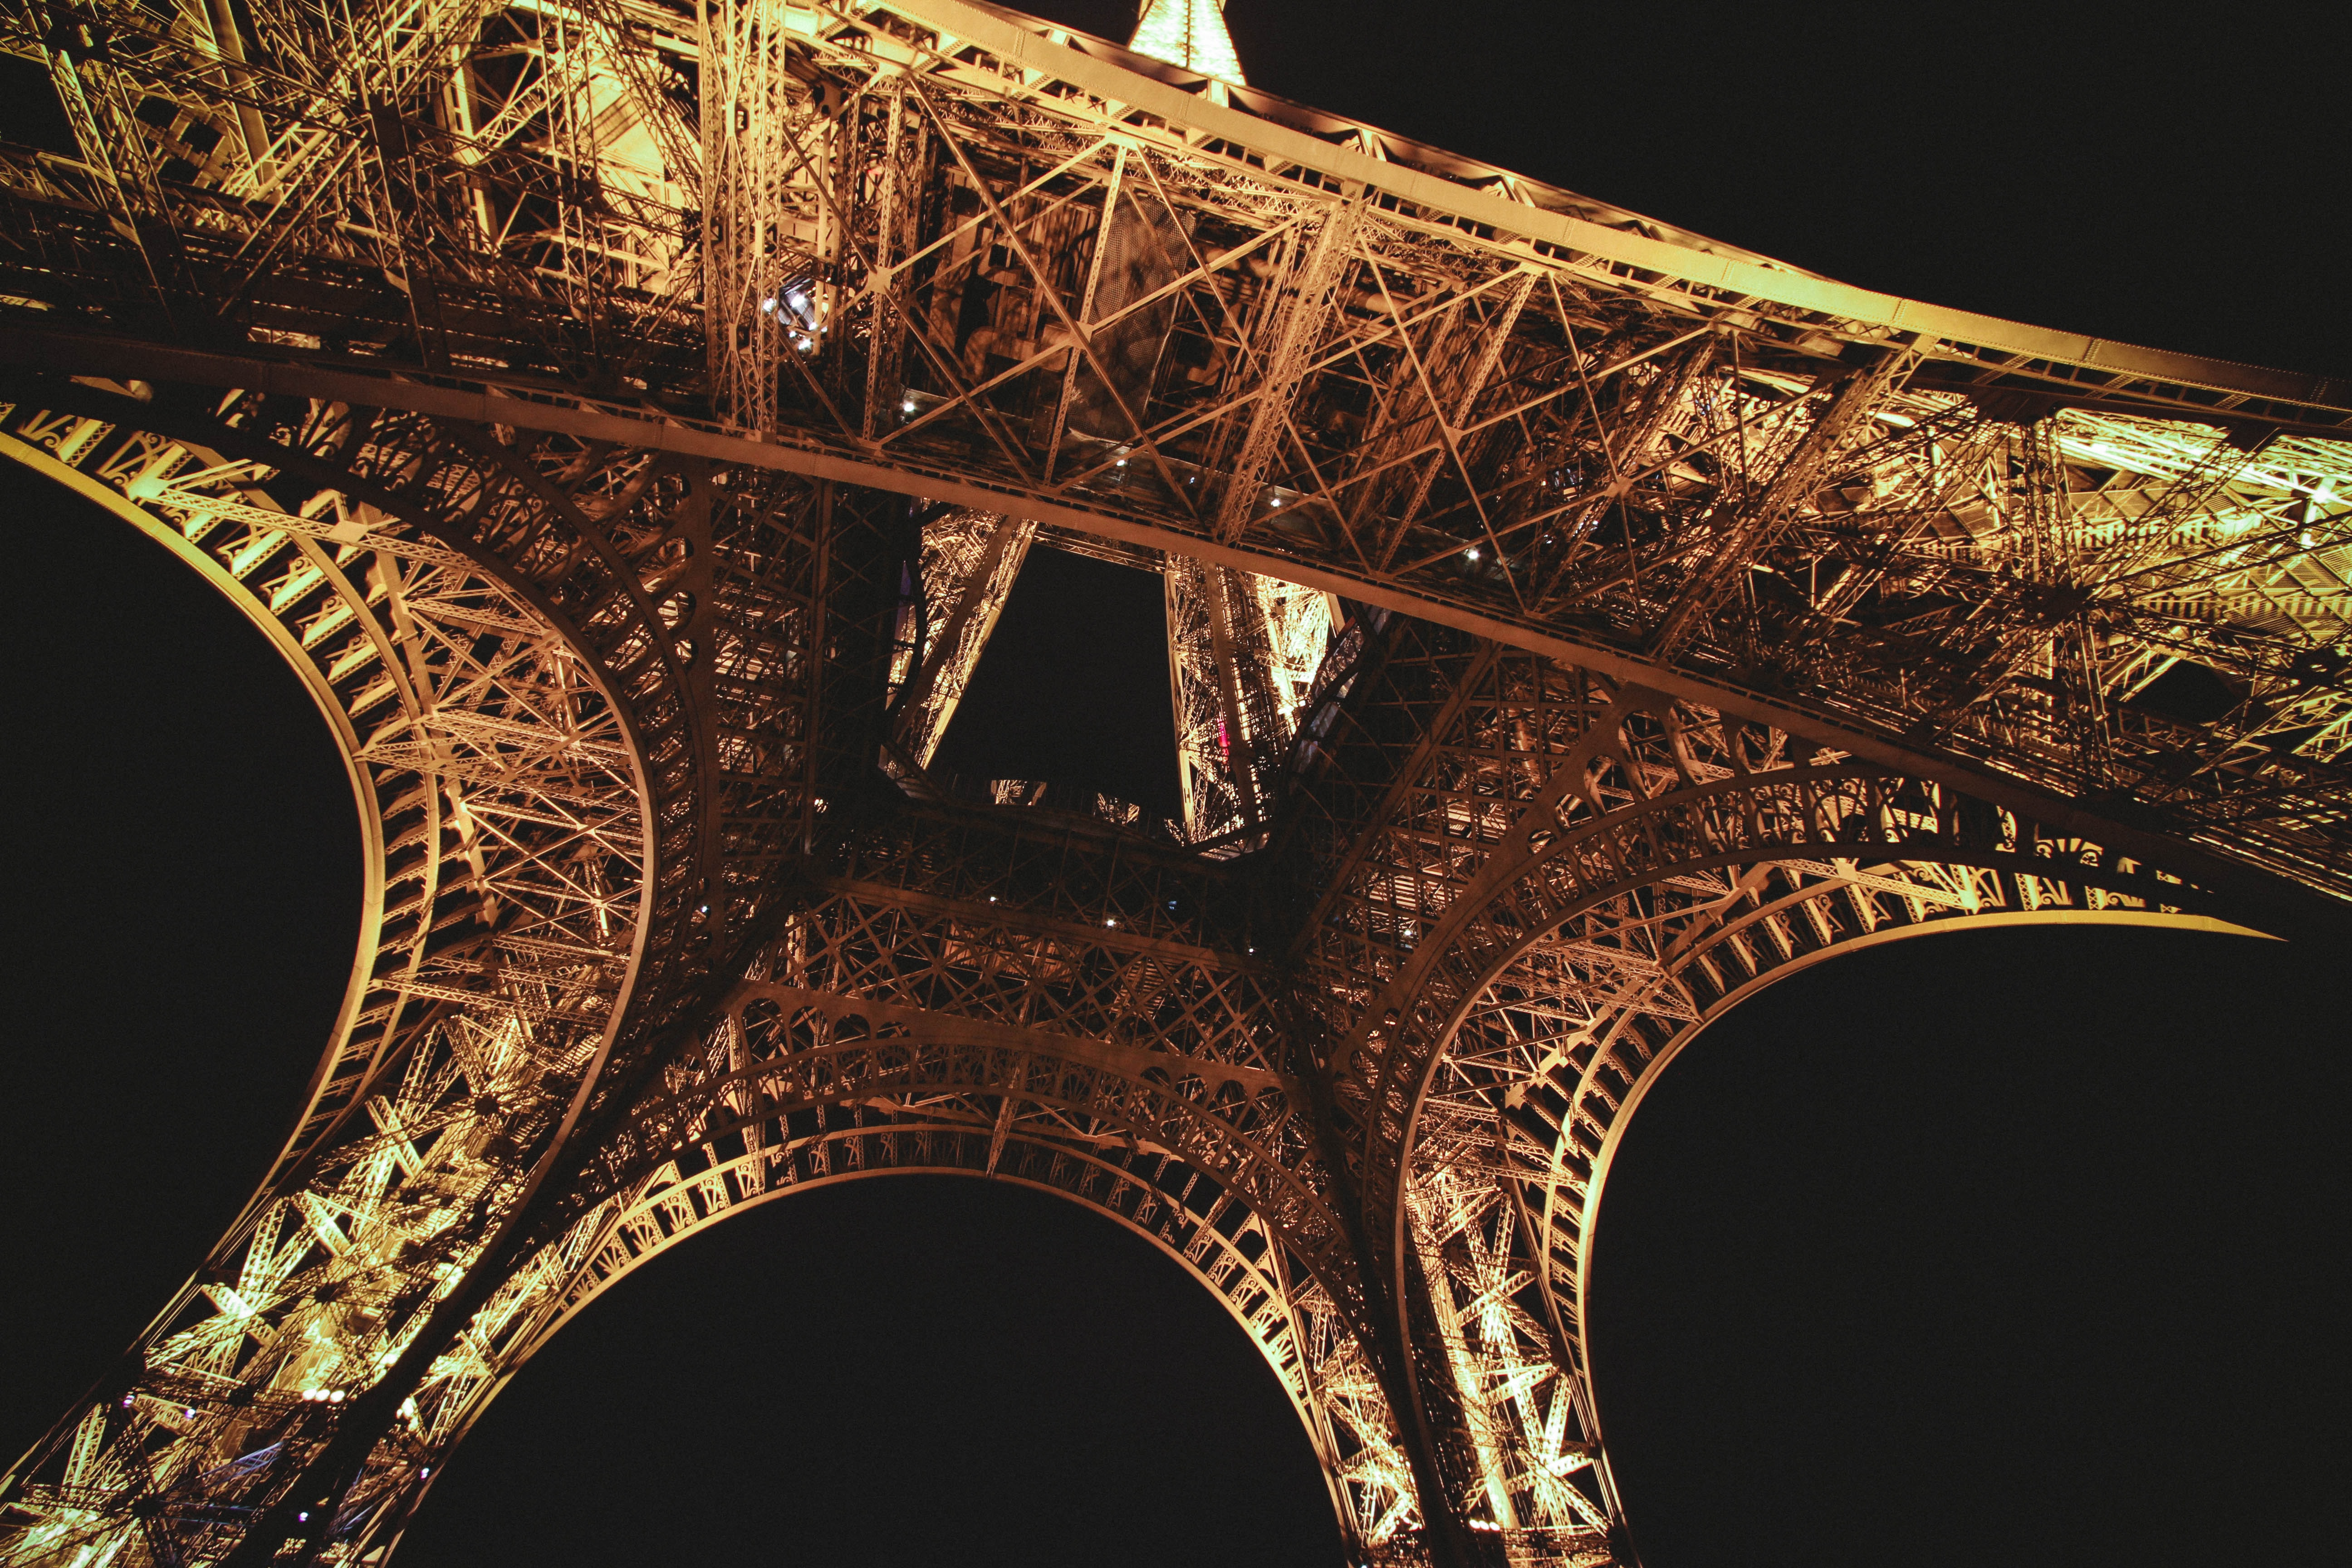 Looking up at the illuminated Eiffel Tower in Paris, France.